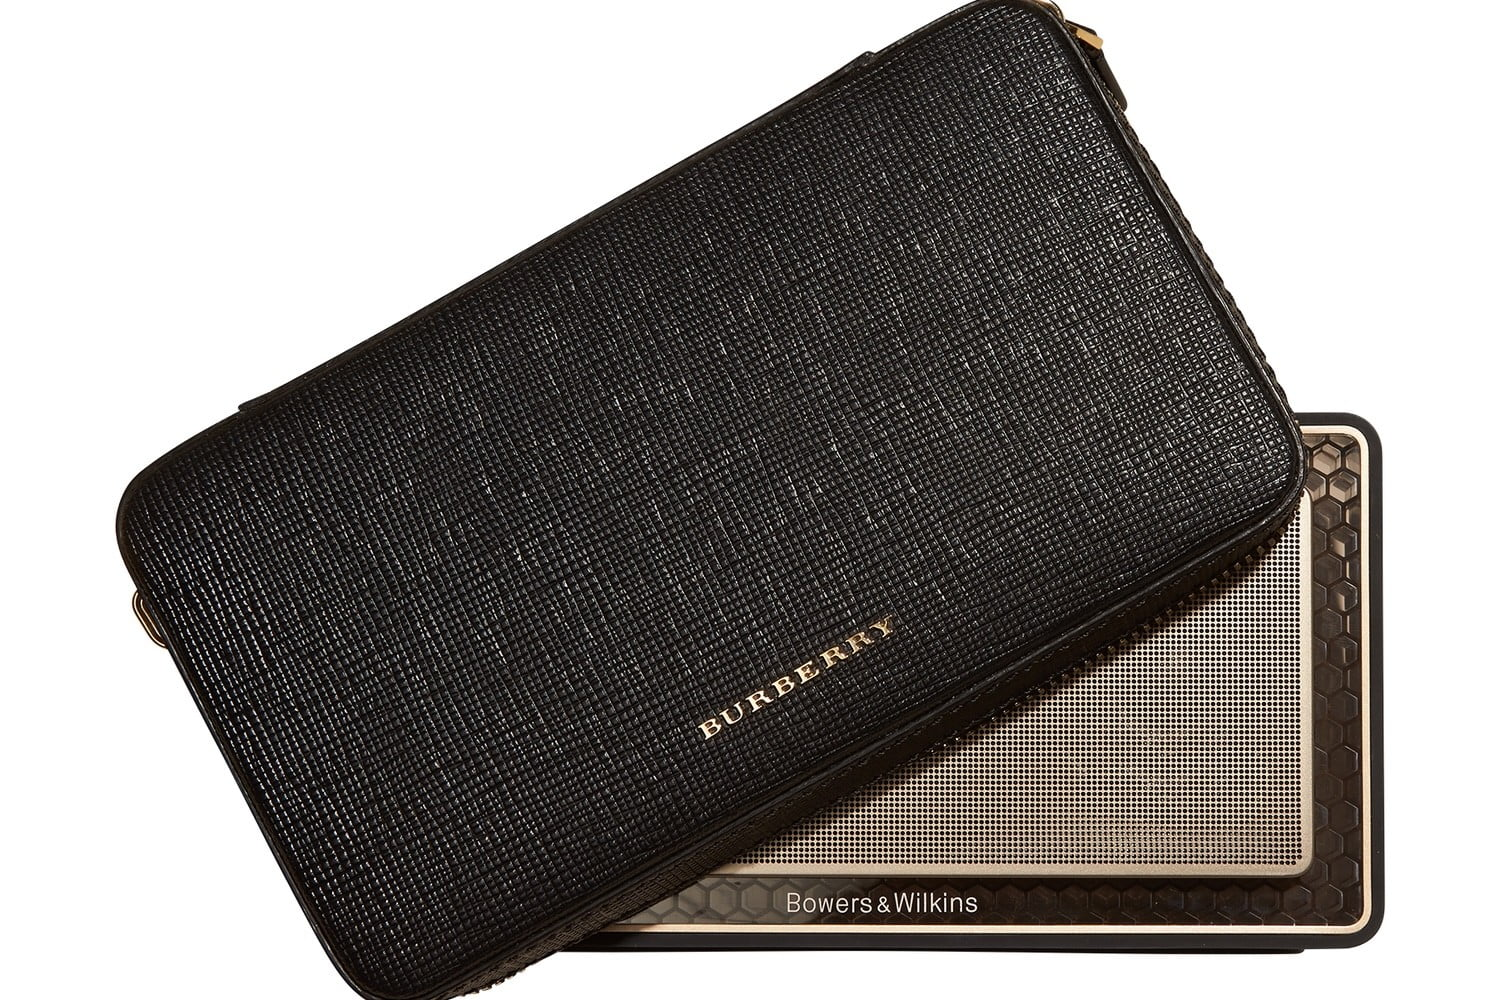 bowers wilkins burberry t7 bluetooth speaker and gold edition 5